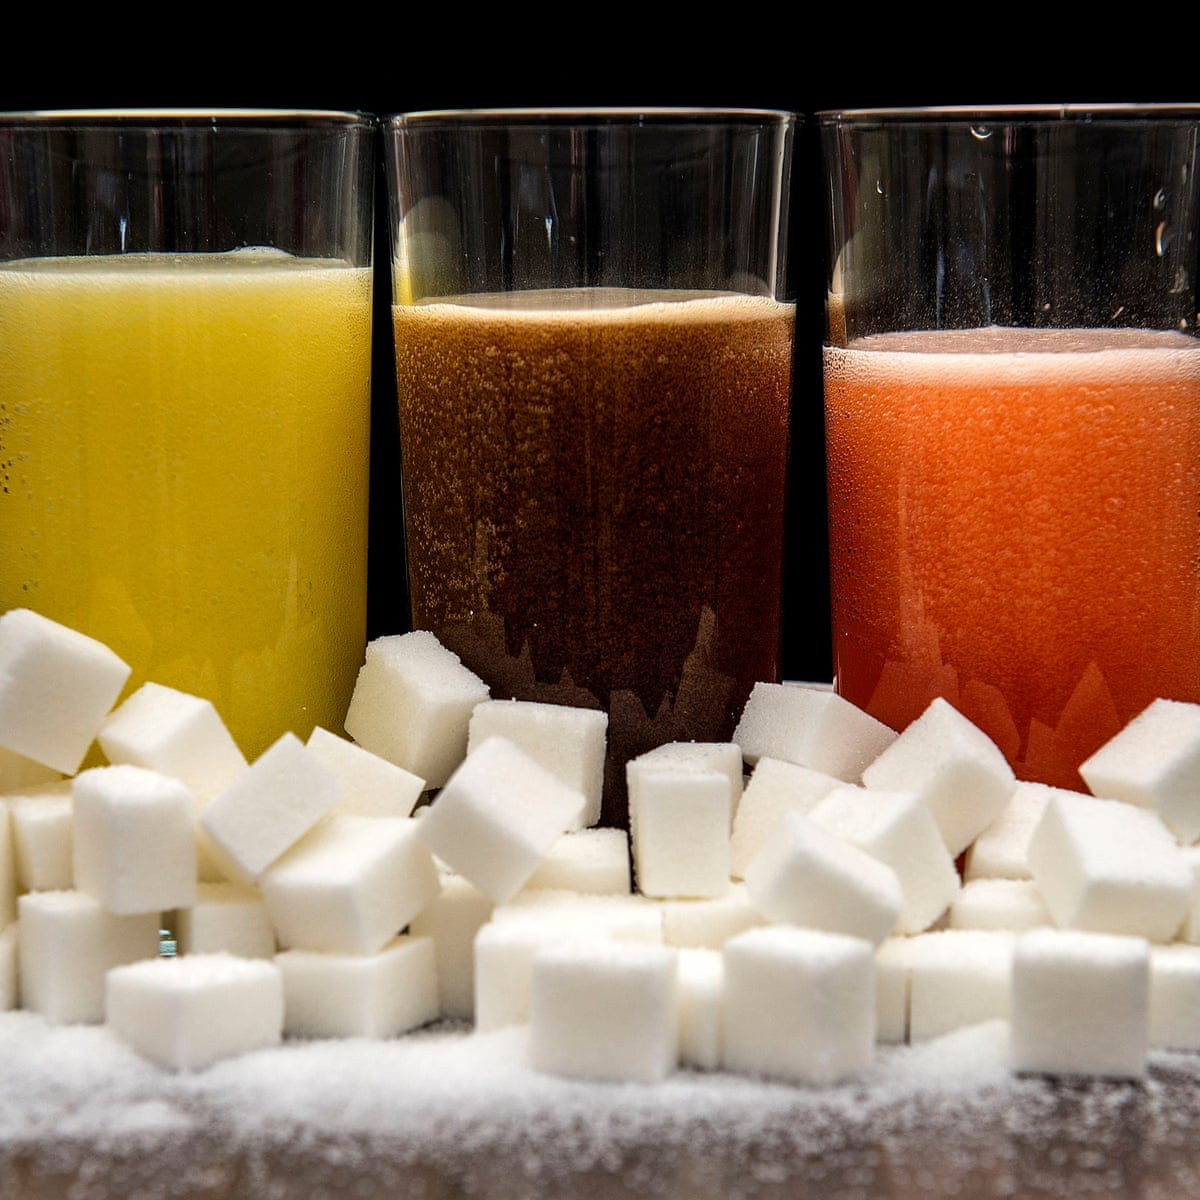 Fruit juices and smoothies contain 'unacceptably high' levels of sugar |  Sugar | The Guardian